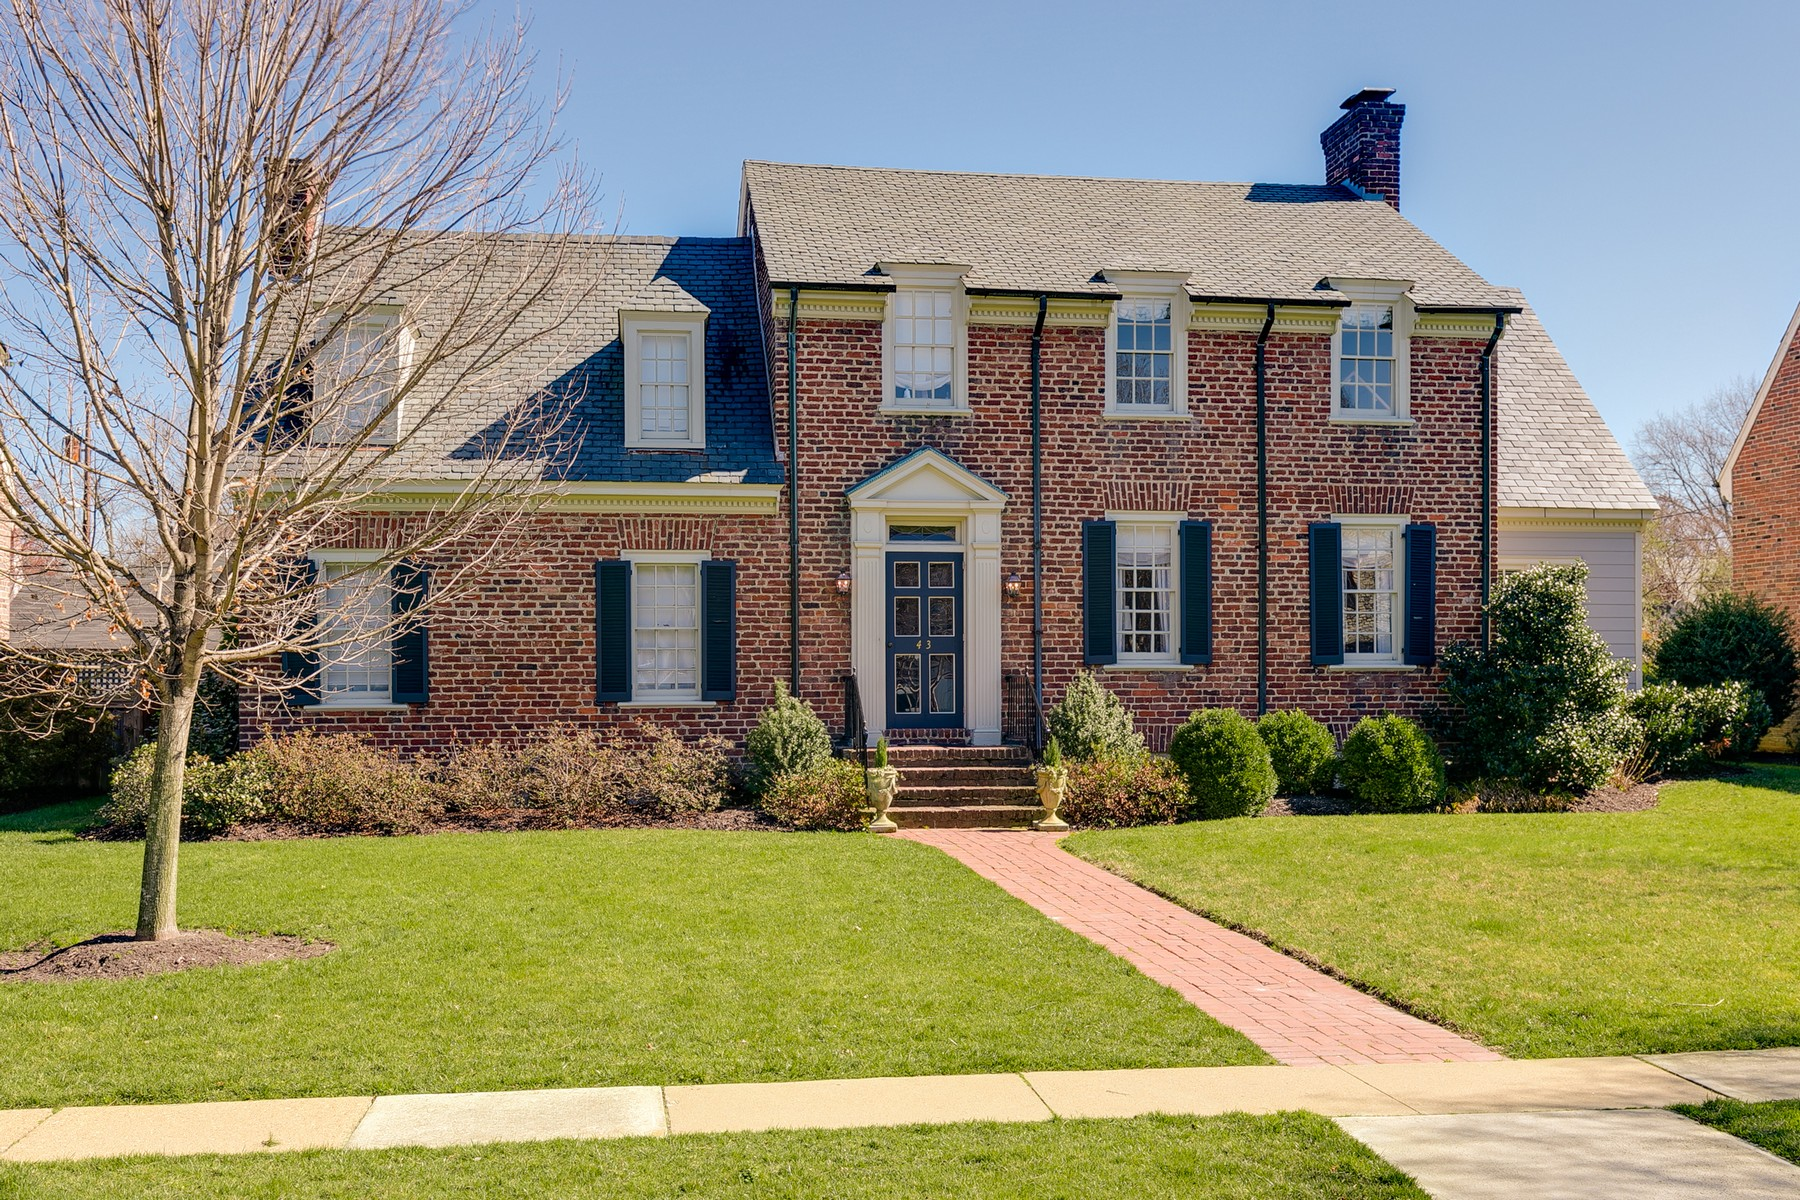 Single Family Home for Sale at 43 Willway Avenue, Richmond 43 Willway Ave Richmond, Virginia 23226 United States